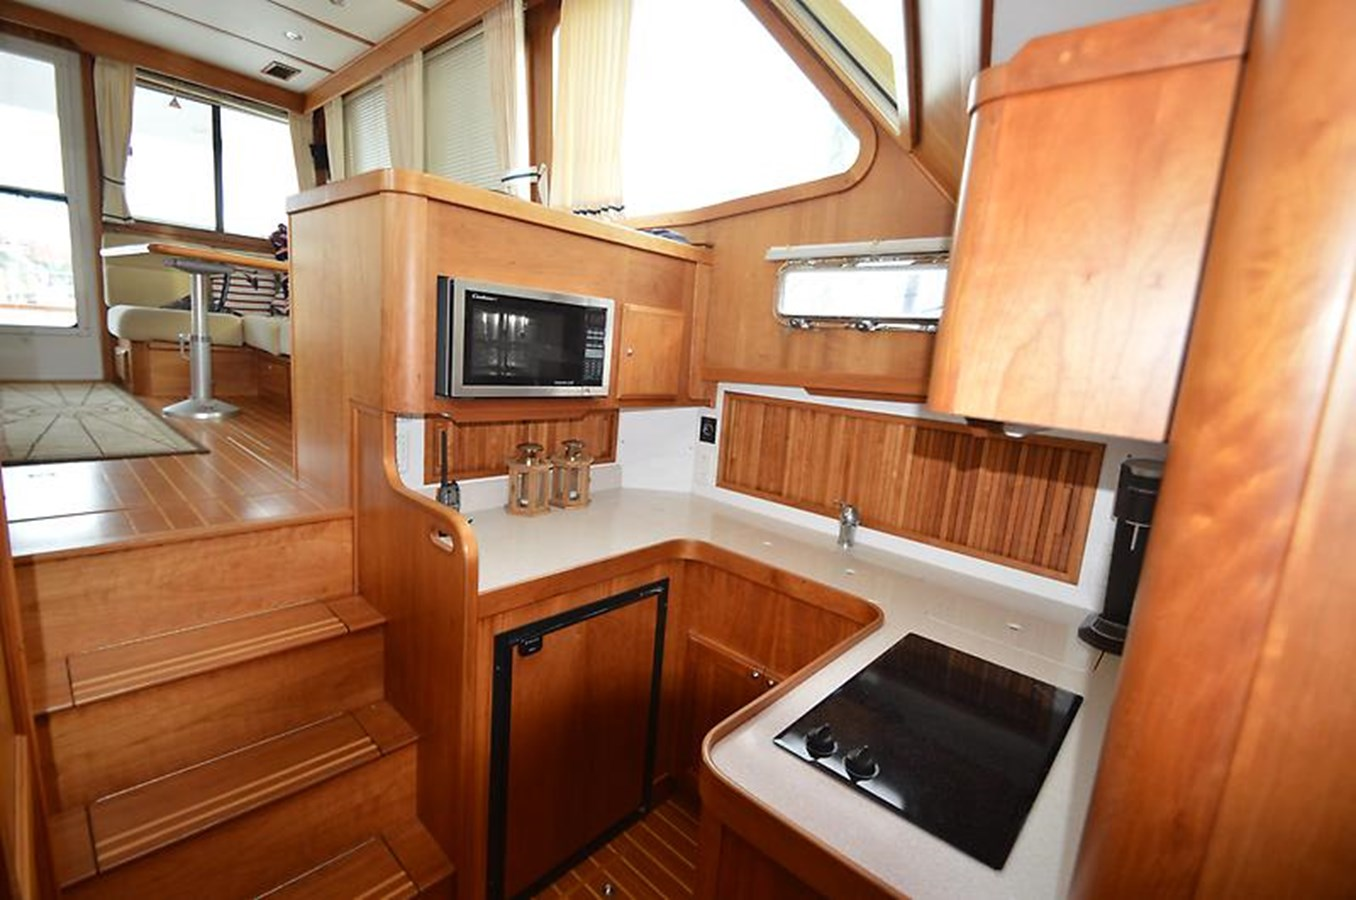 Galley - 42 SABRE YACHTS For Sale